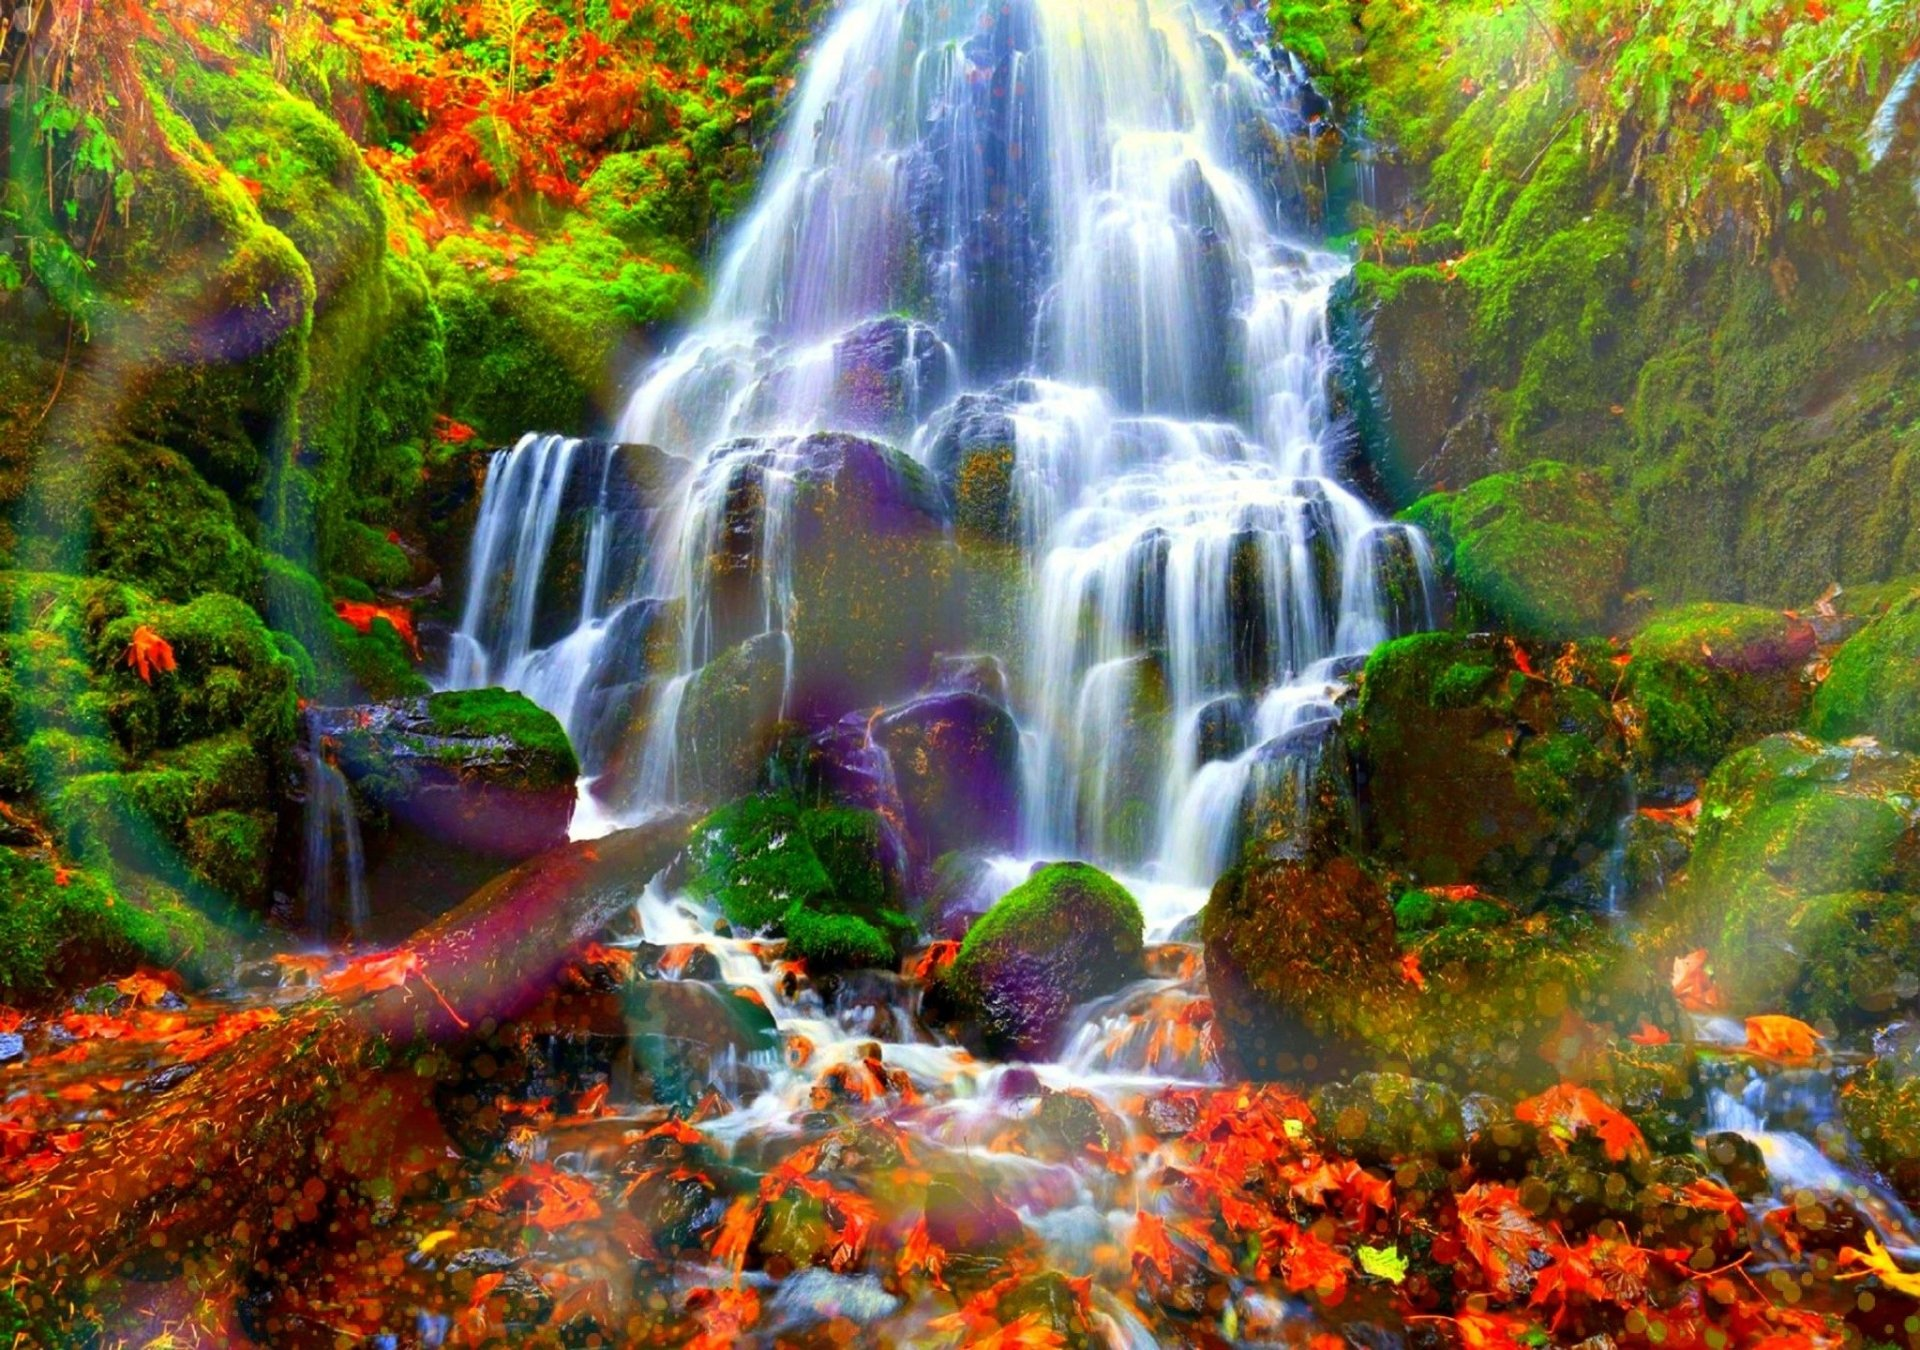 Fall Wallpaper For Large Monitors Autumn Forest Water Cascades Hd Wallpaper Background